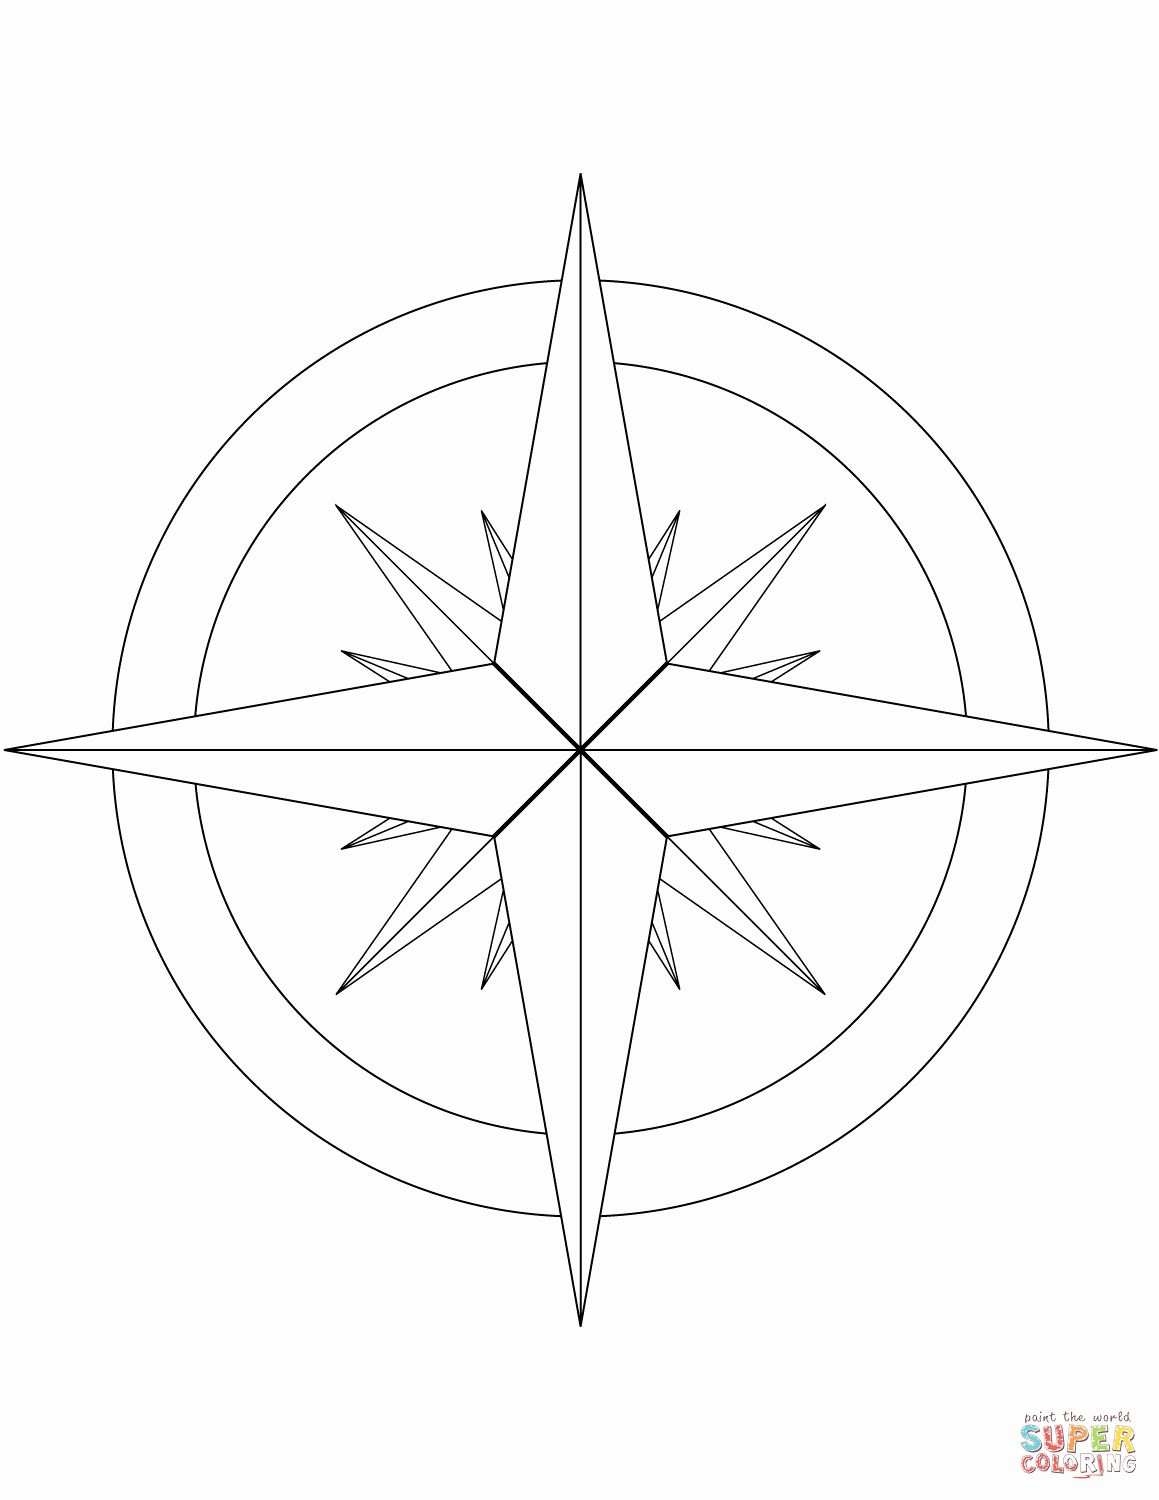 Compass Rose Coloring Page Unique 16 Point Pass Rose Coloring Page Rose Coloring Pages Compass Rose Simple Compass Tattoo